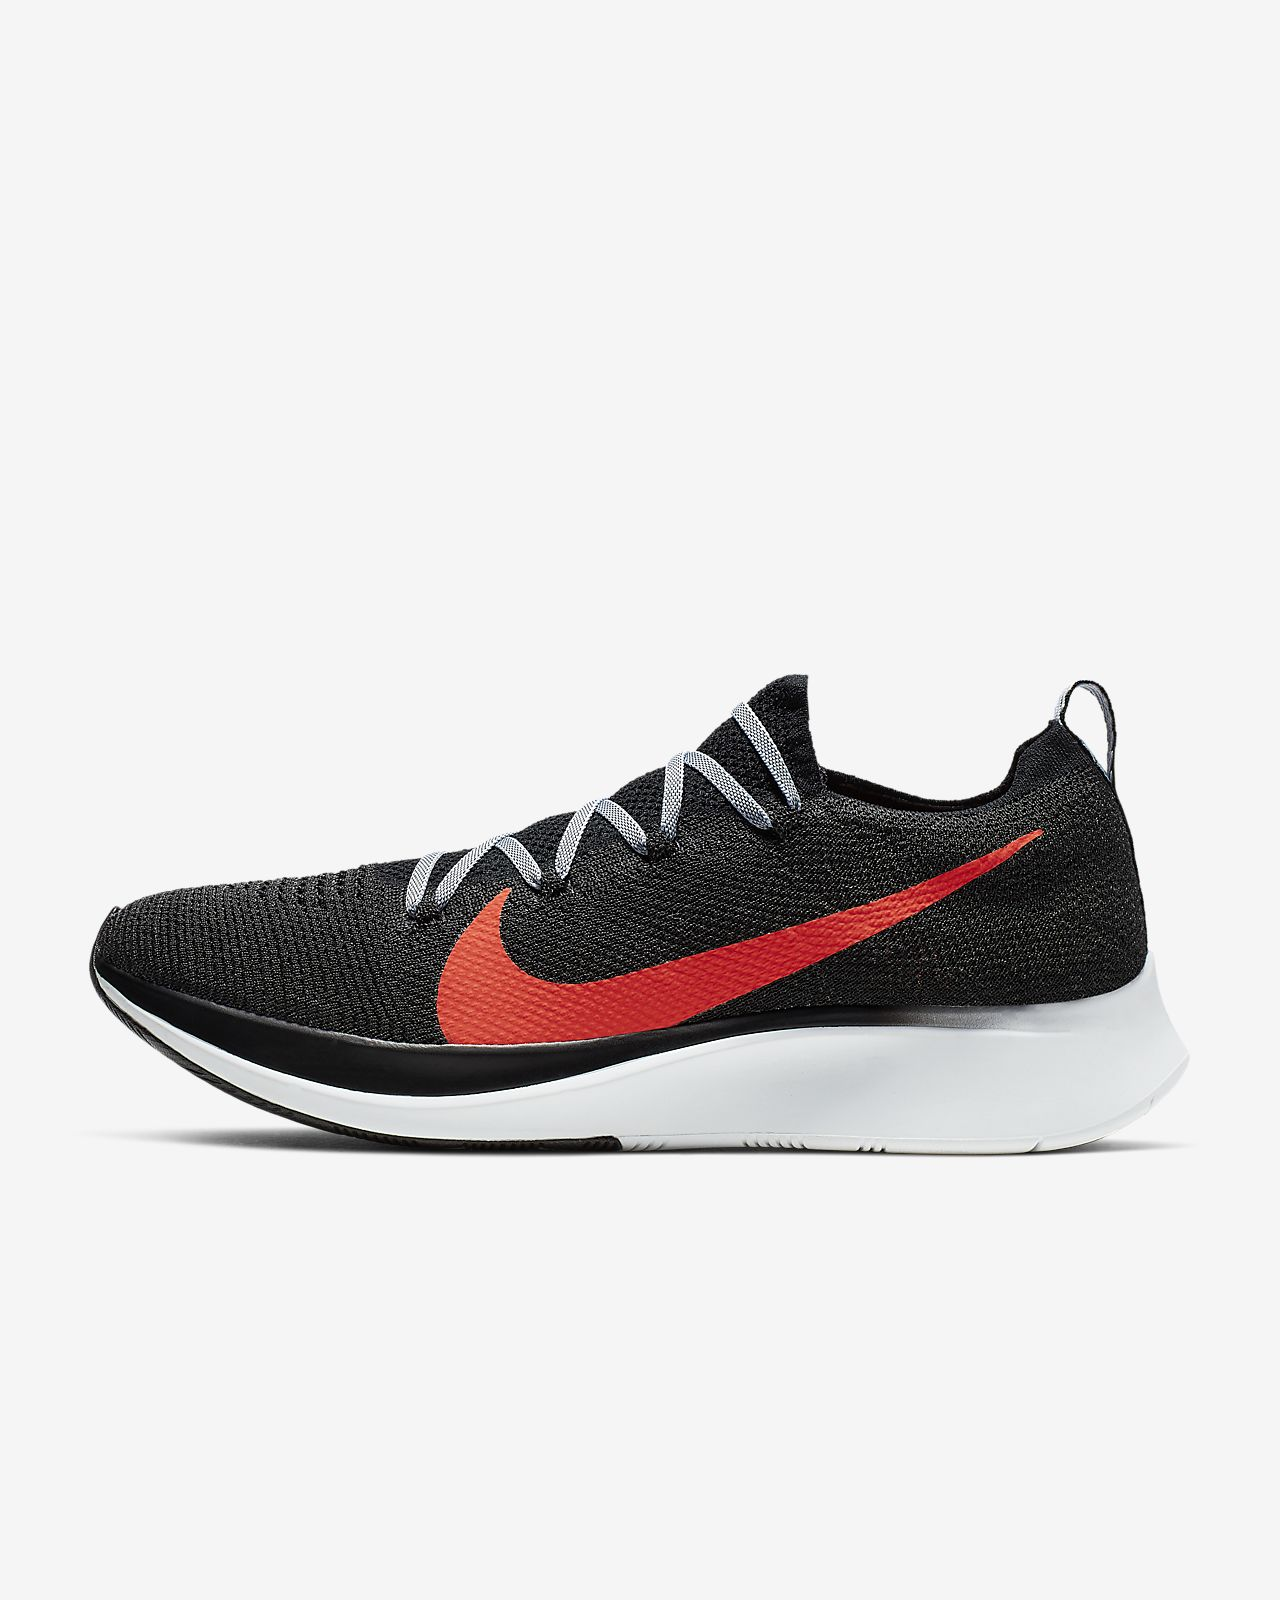 new product 8310e 79d49 Nike Zoom Fly Flyknit